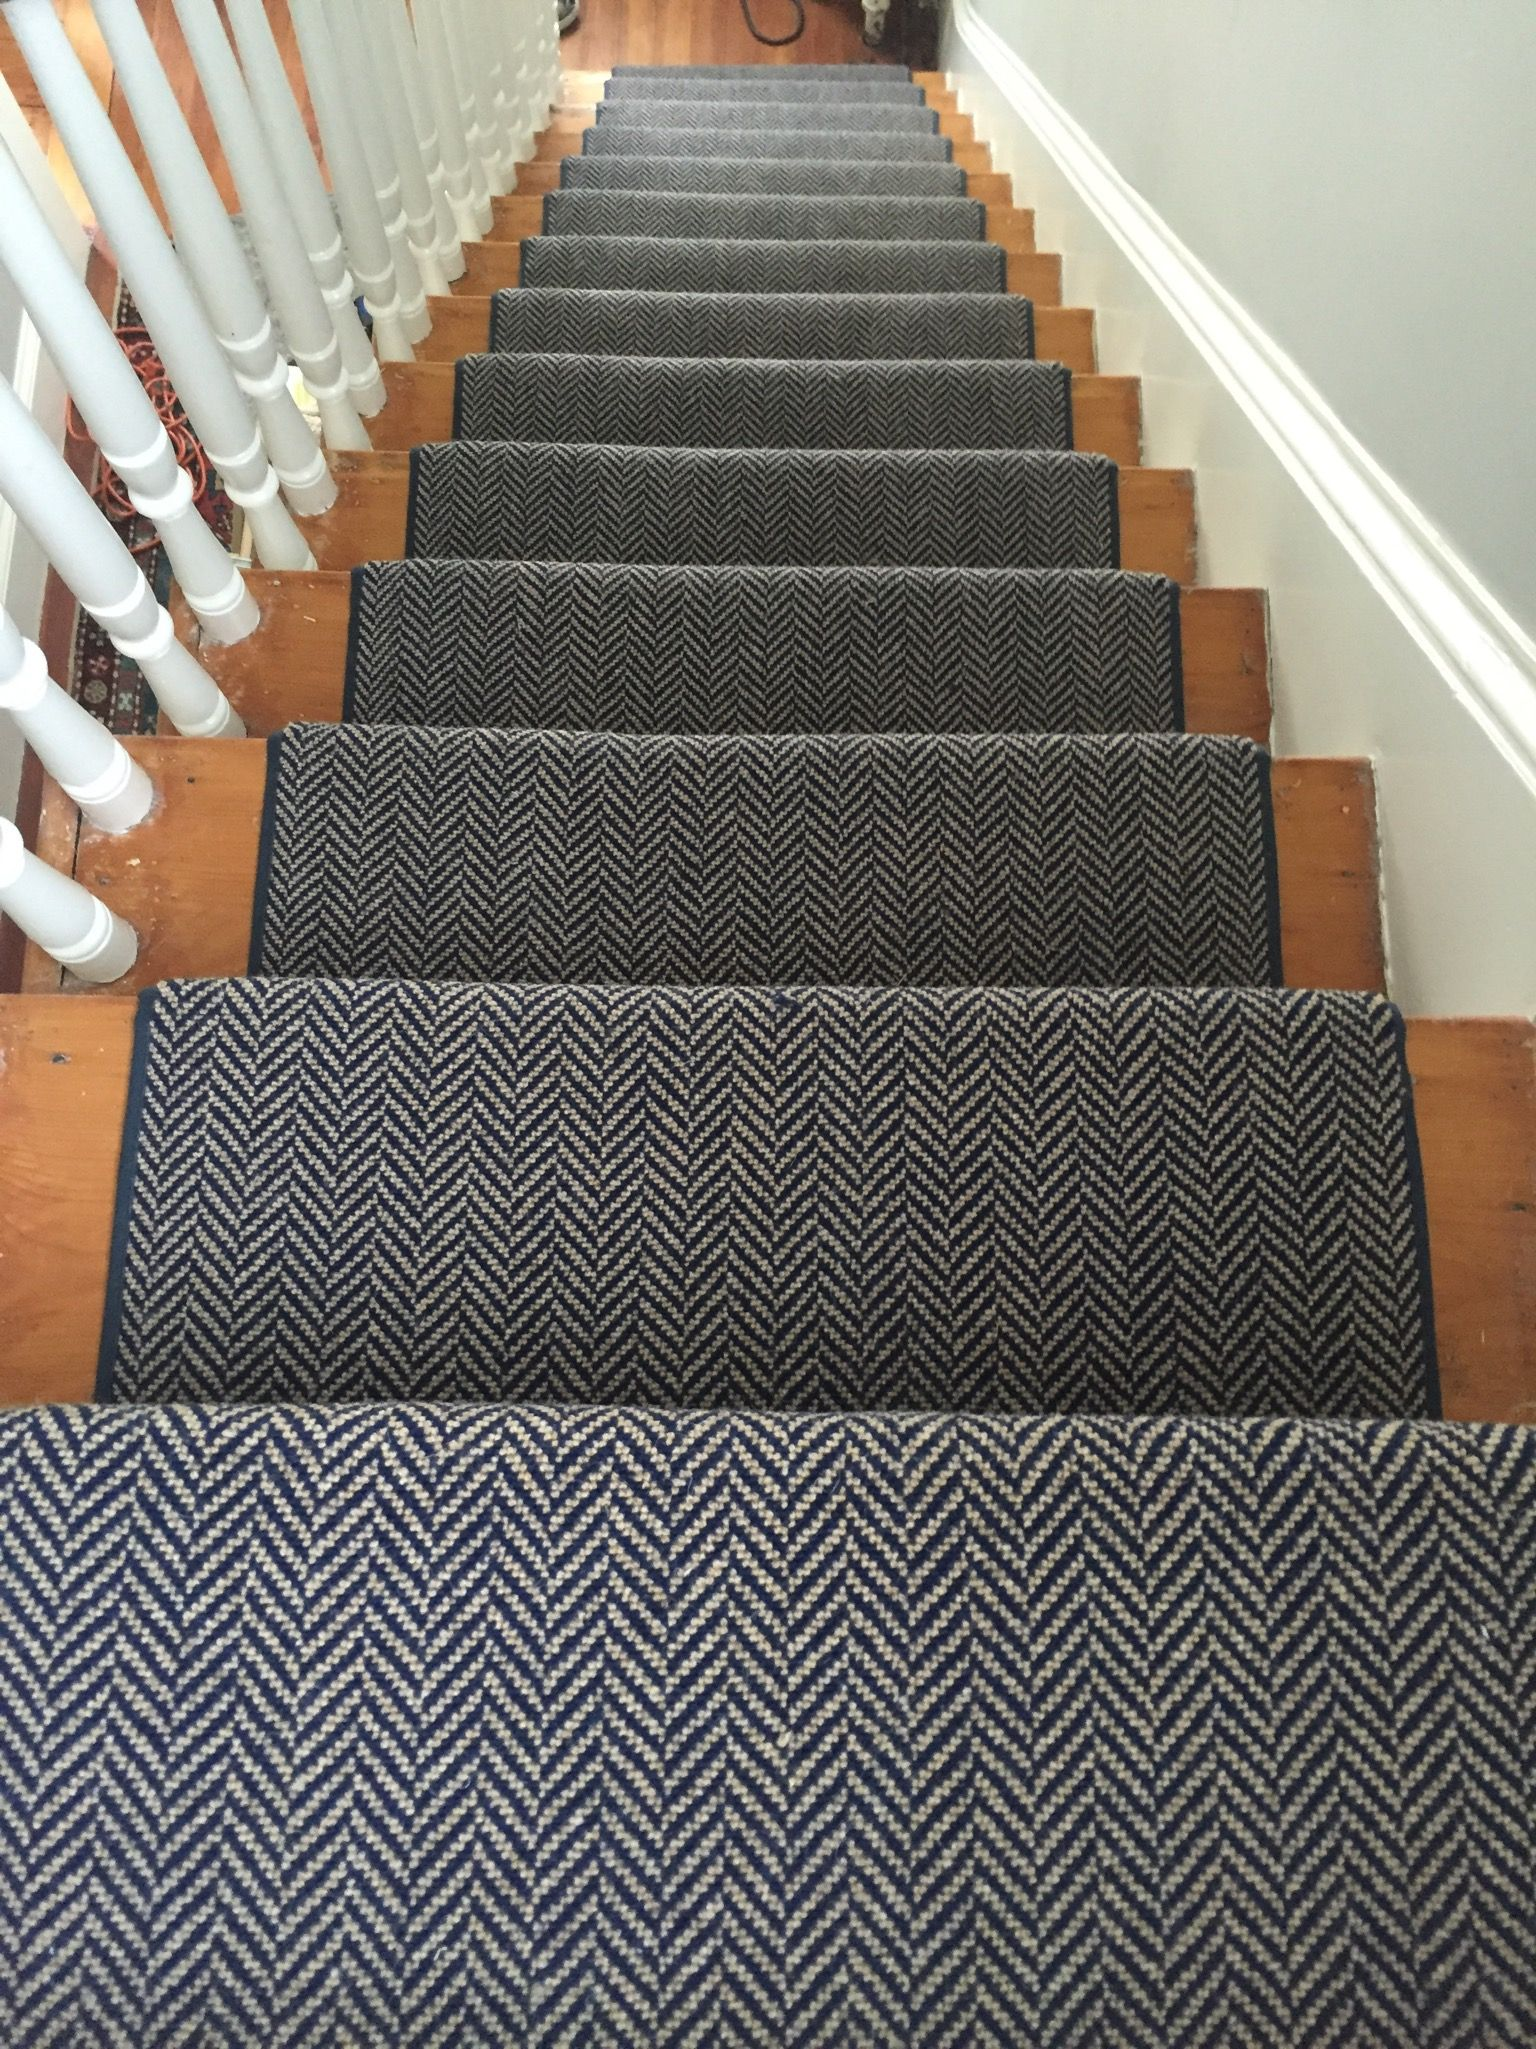 Custom Rug Fabrication In 2020 Carpet Stairs Rugs On | Carpet Runners For Carpeted Stairs